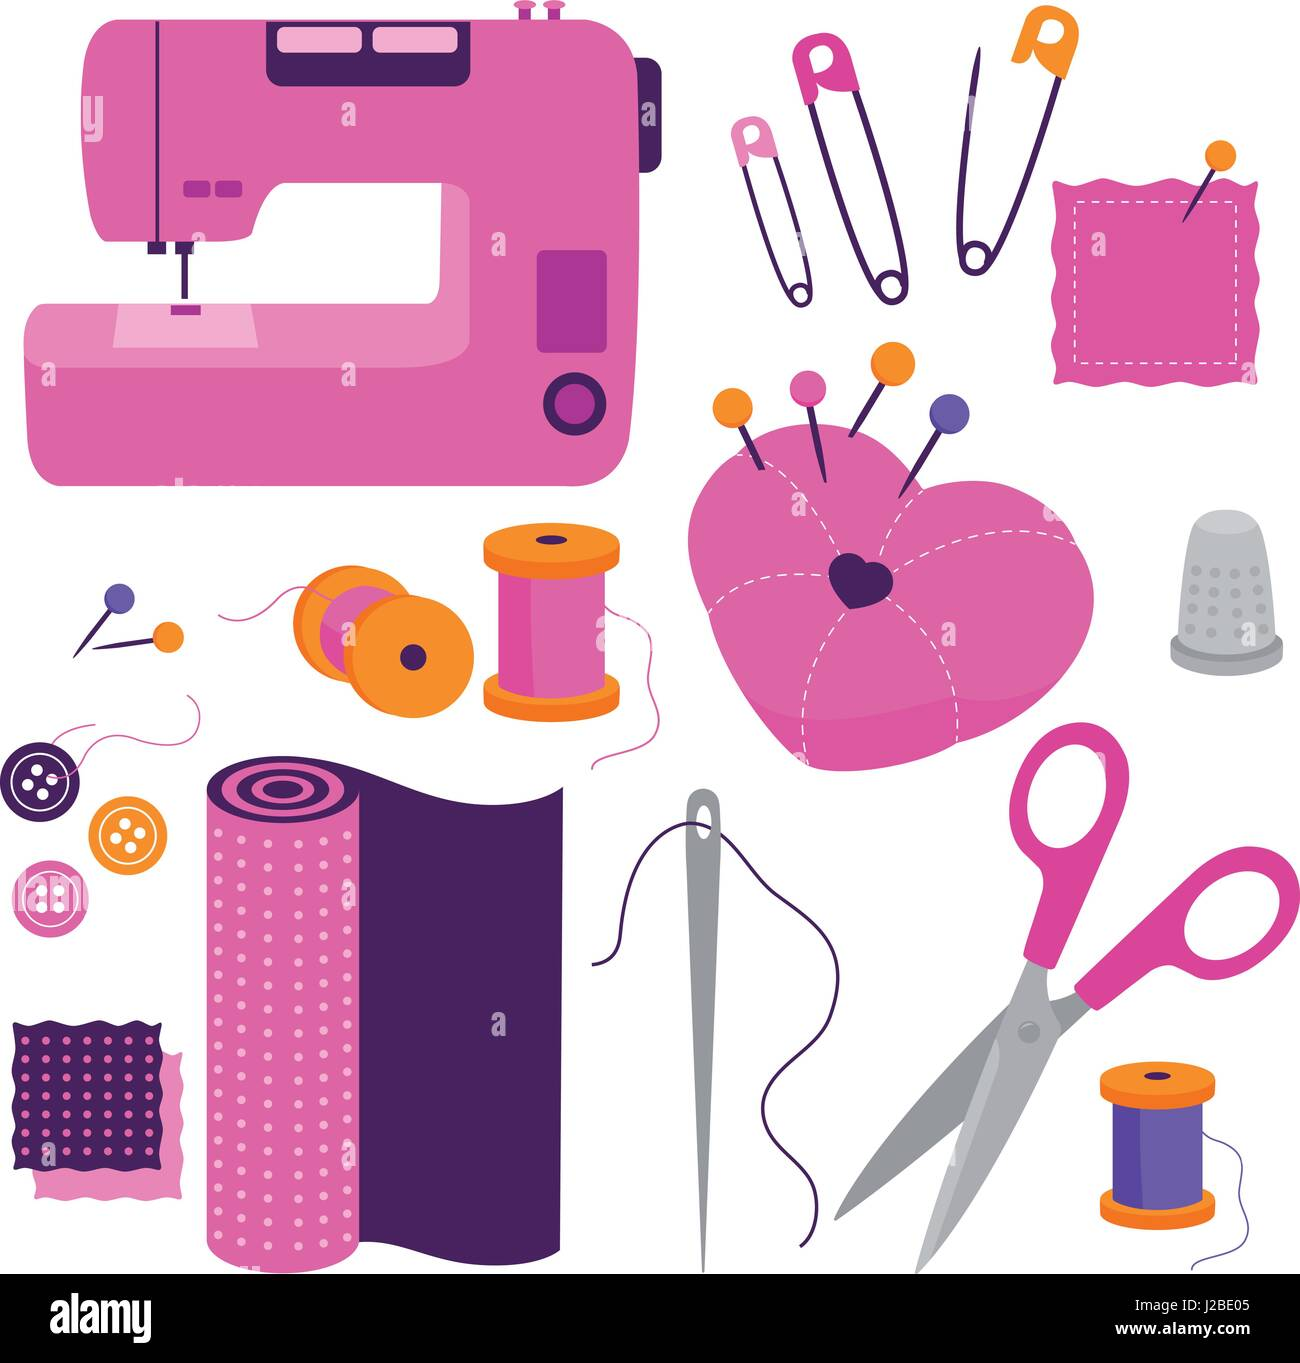 Sewing tools and equipment. Sewing tools equipment and ...